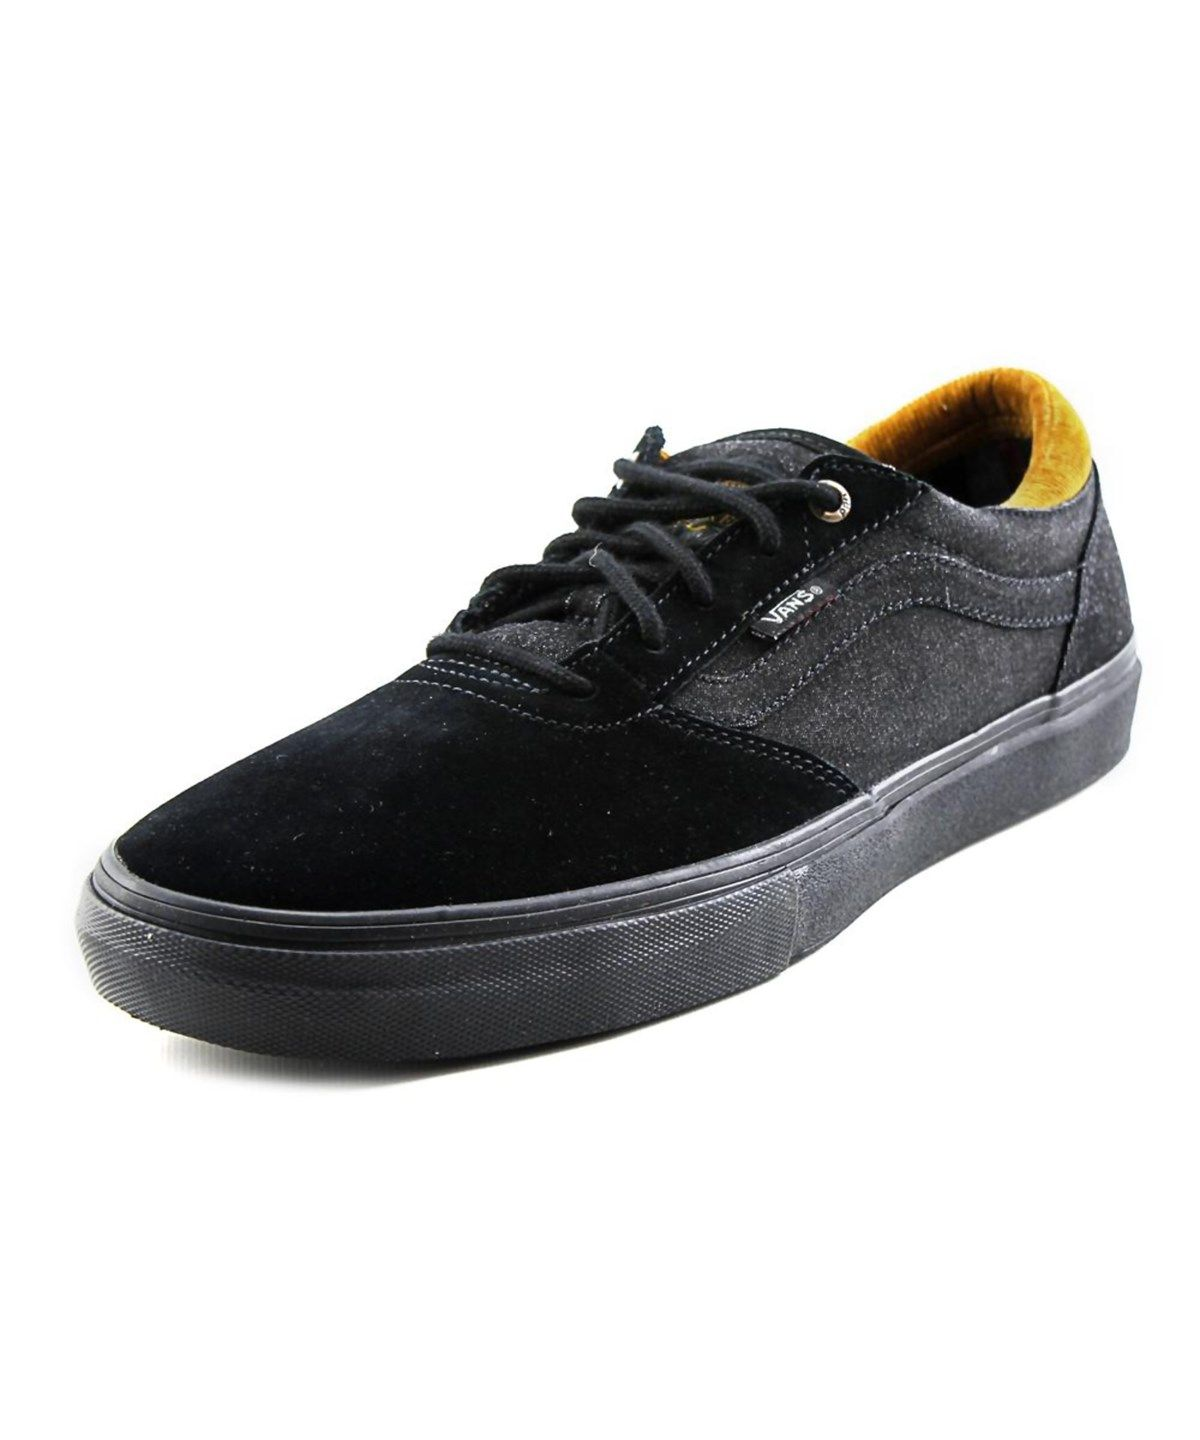 bc7c657adb VANS Vans Gilbert Crockett Pro Men Round Toe Suede Black Skate Shoe .  vans   shoes  sneakers